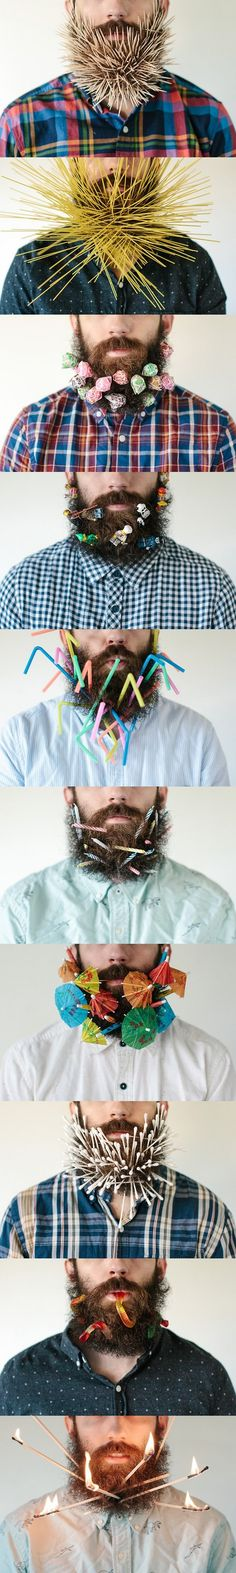 the #amazing #beard - Just DWL || The Ultimate Trolling